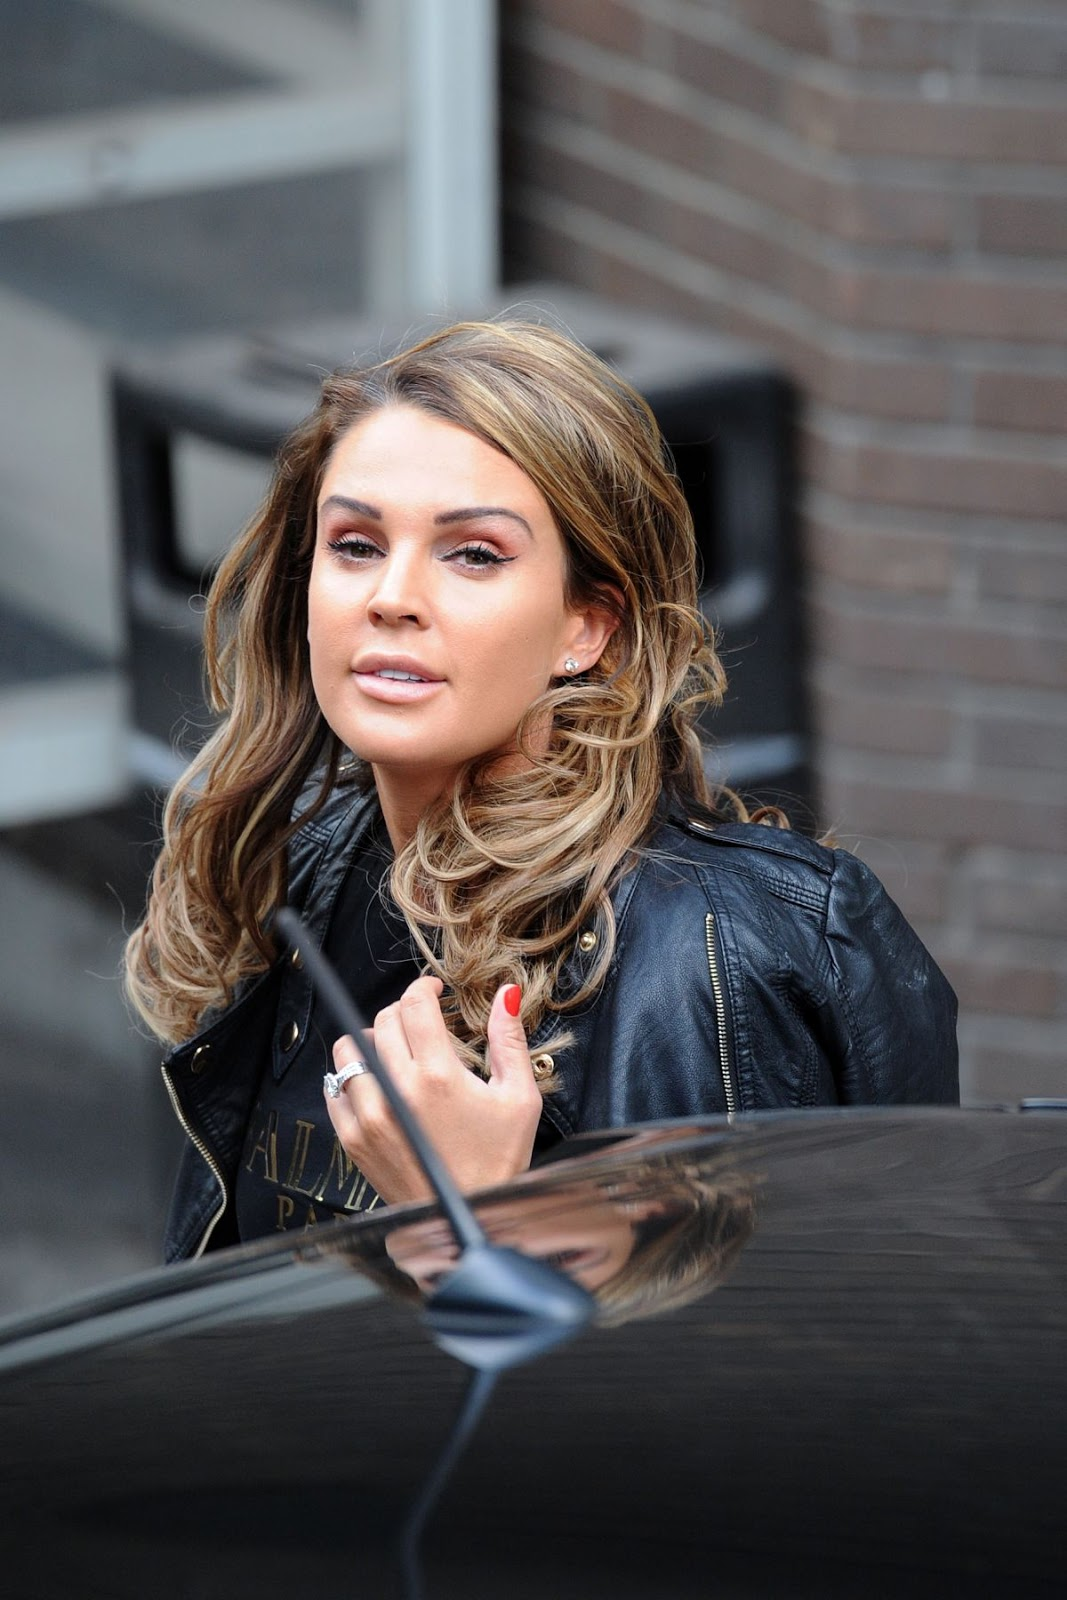 HD Photos of Ex Miss England Danielle Lloyd At Itv Studios In London